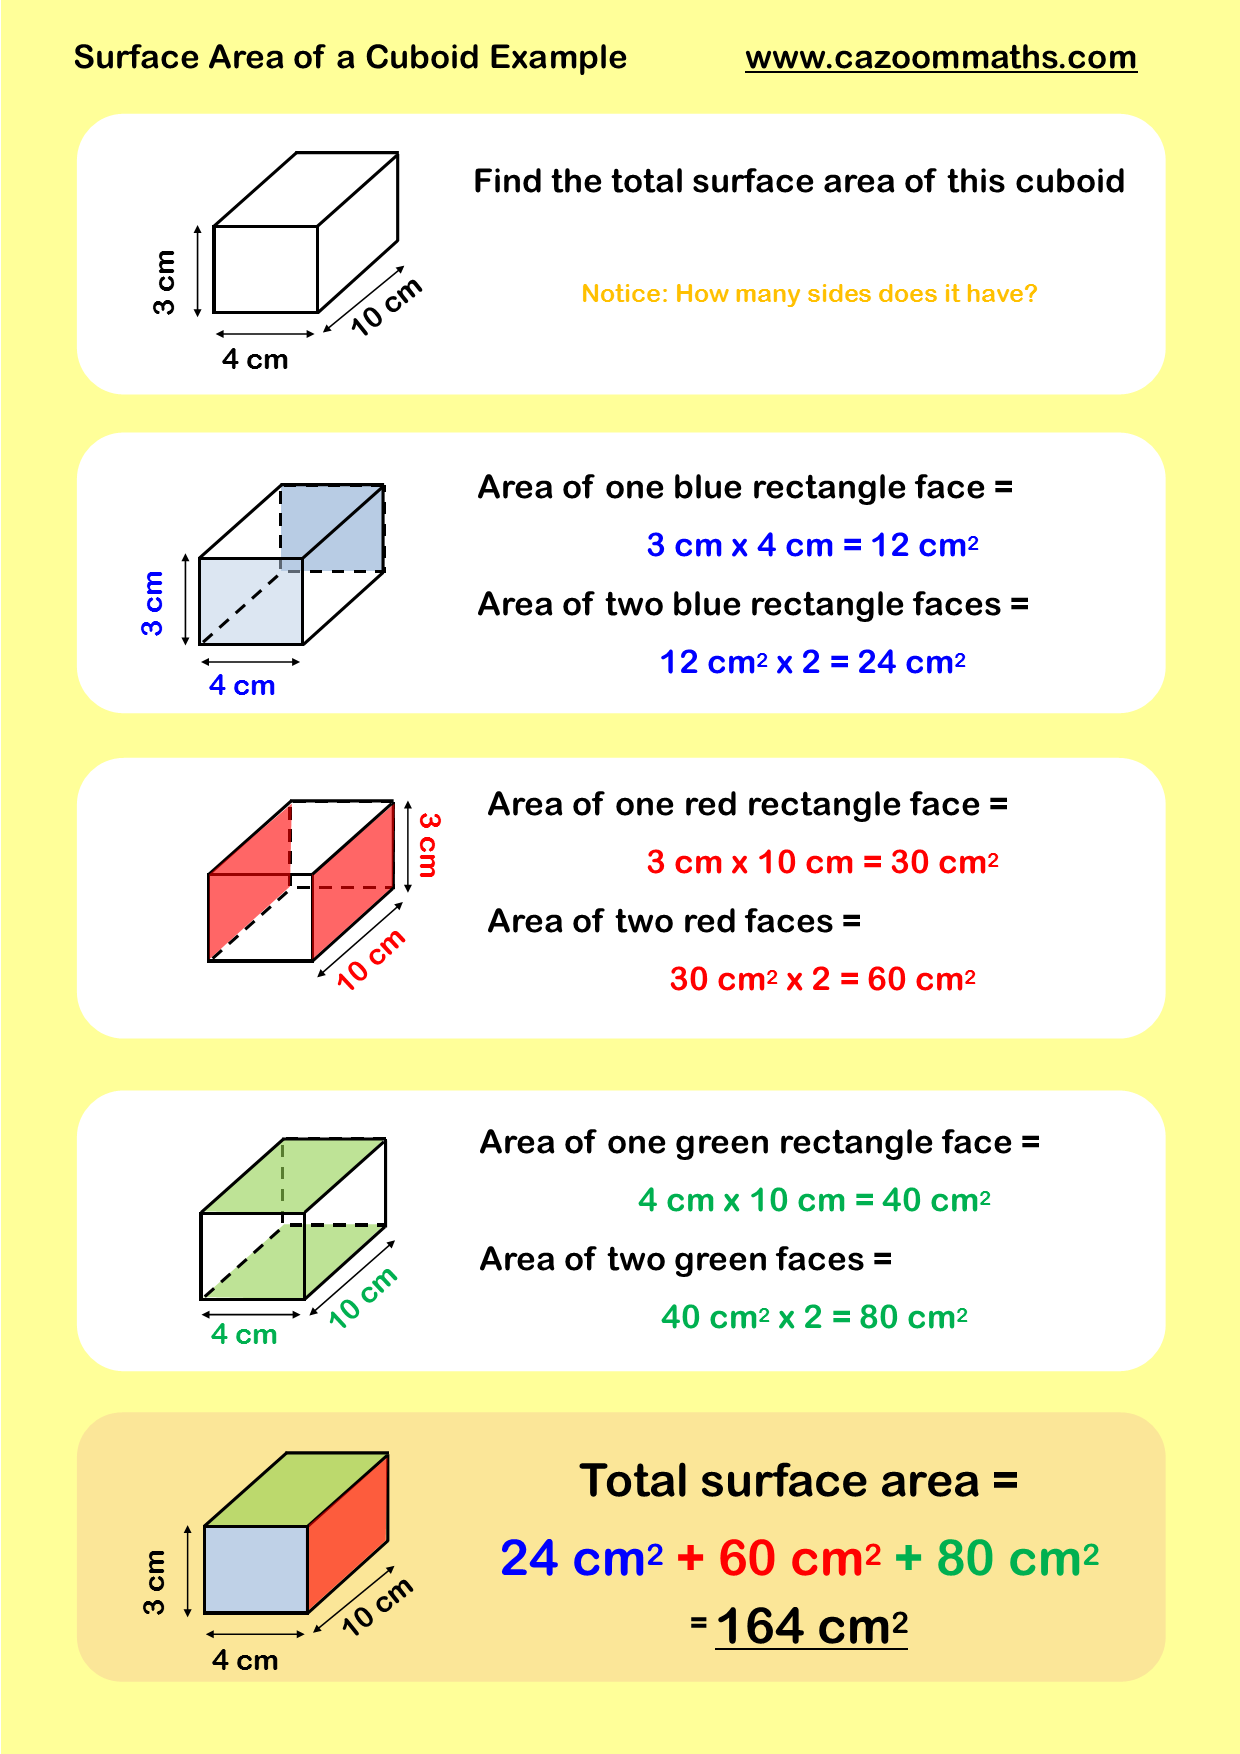 Surface Area Of A Cuboid Example